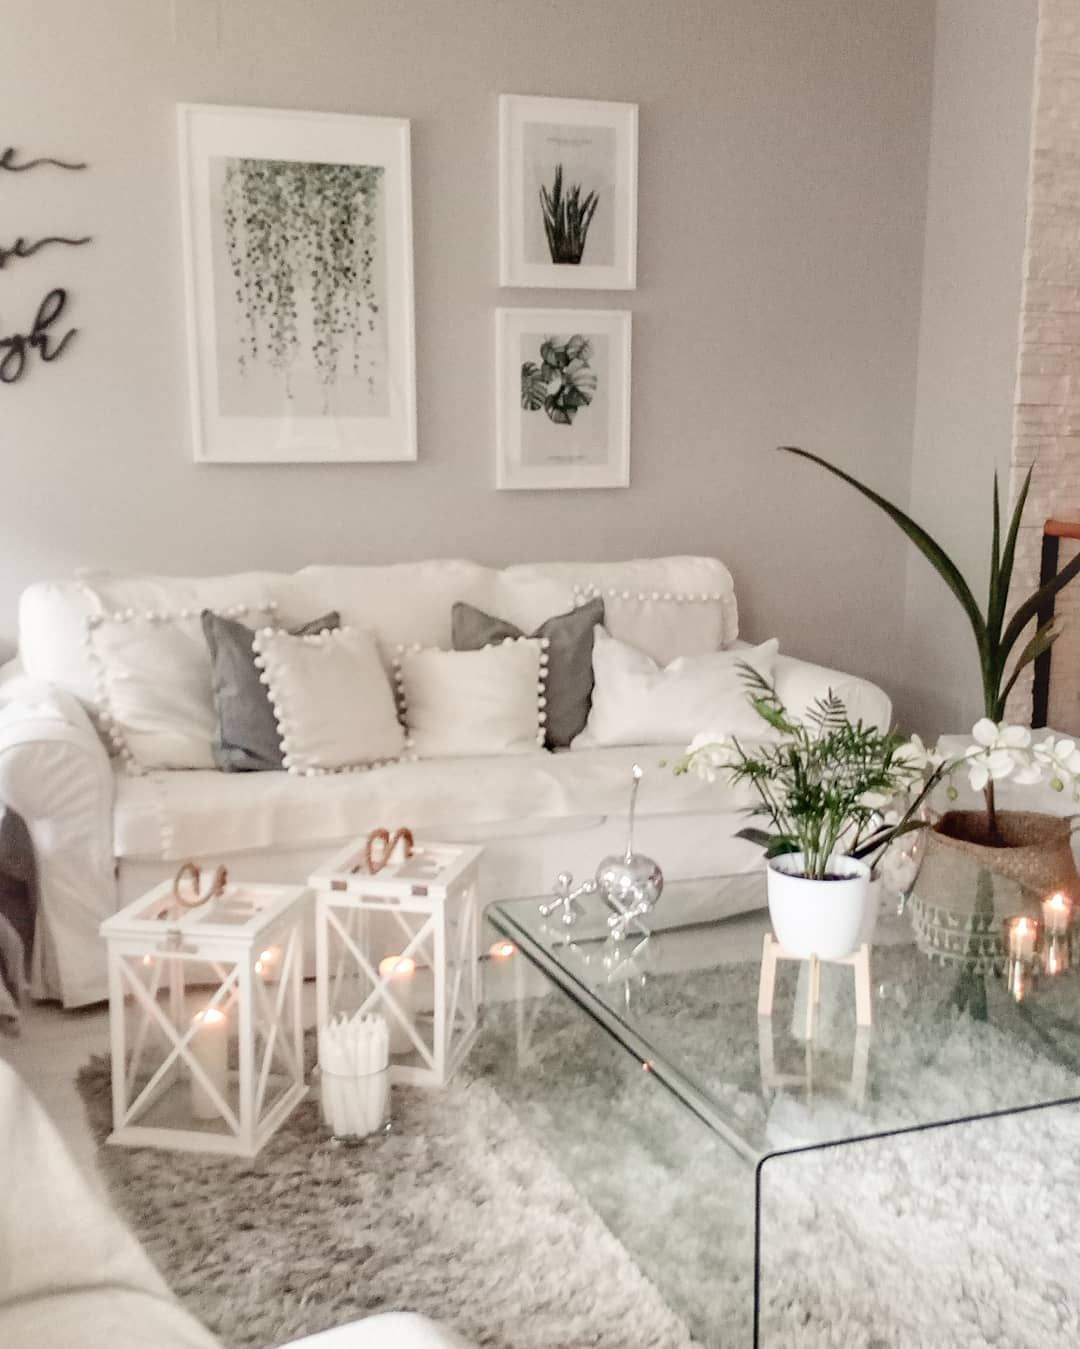 37 White and Silver Living Room Ideas That Will Inspire You images